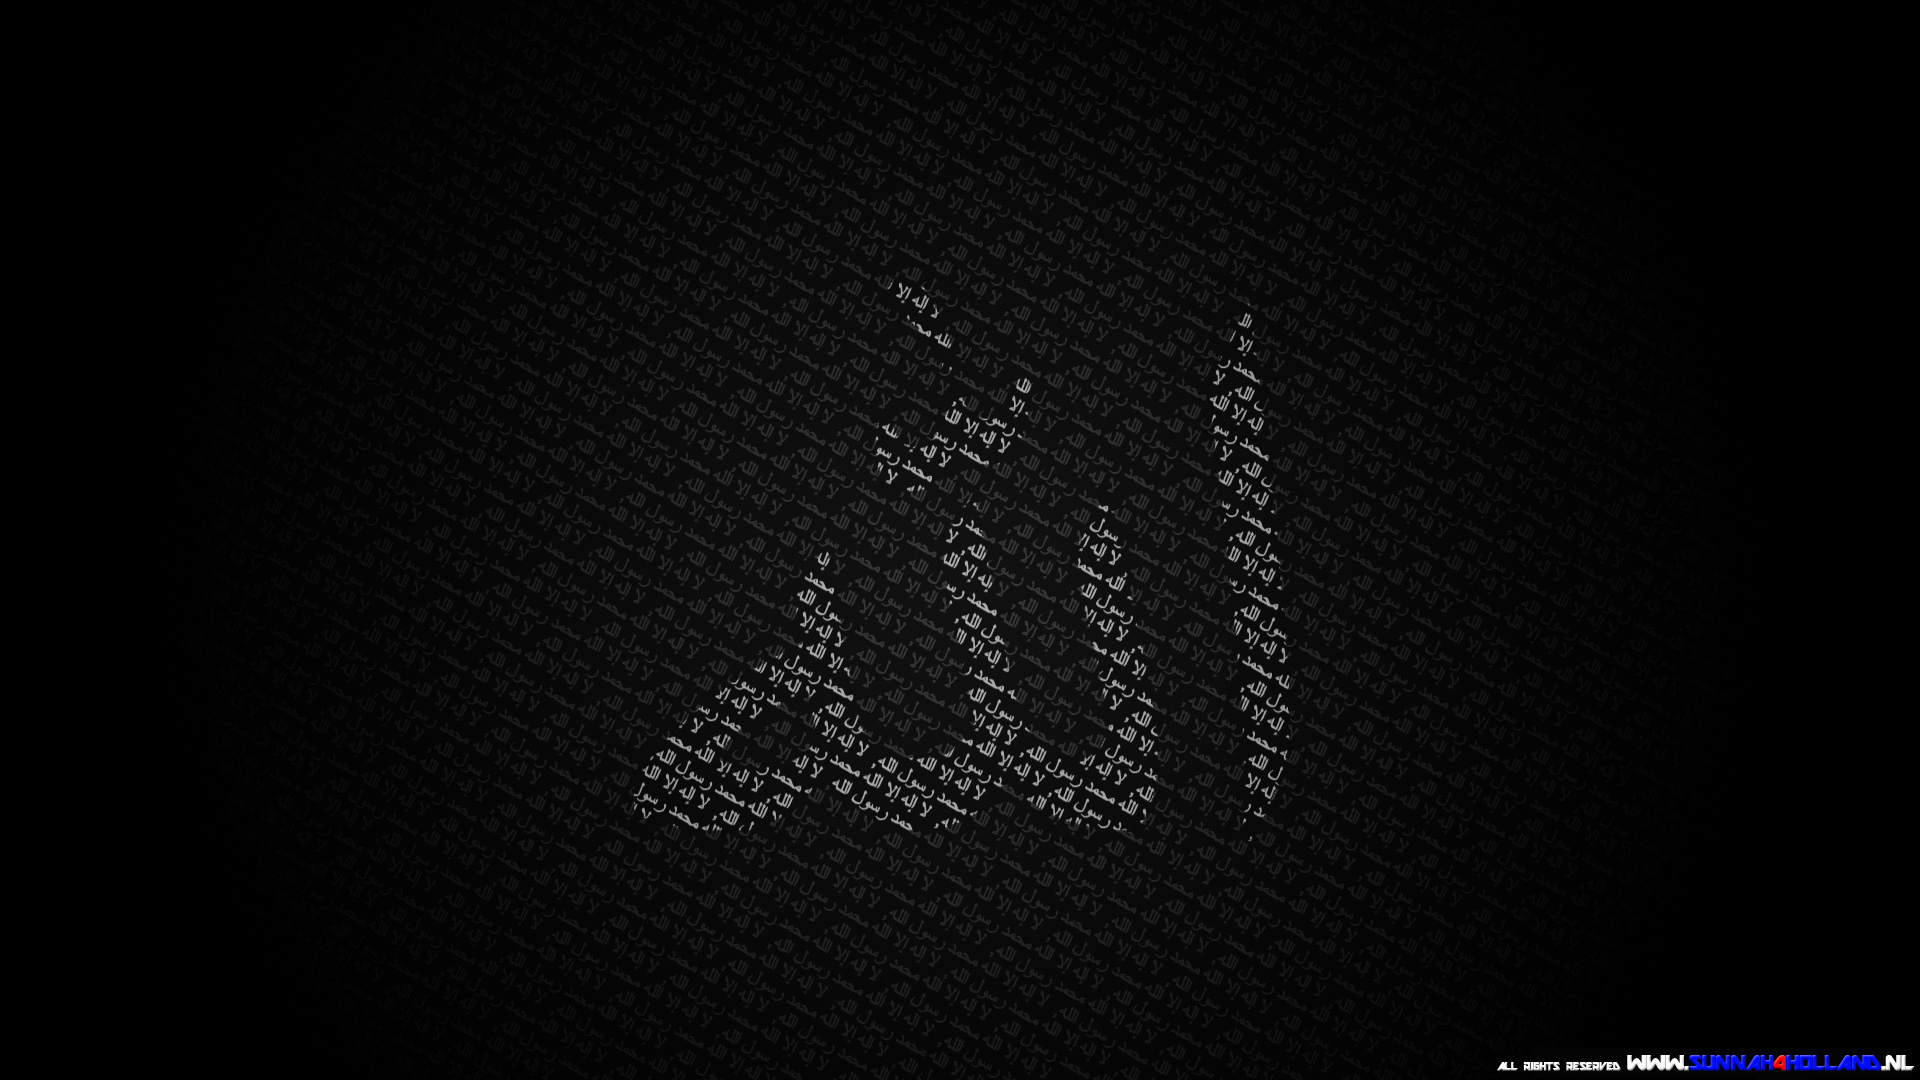 Full hd wallpapers co sunnah4holland for Black wallpaper full hd